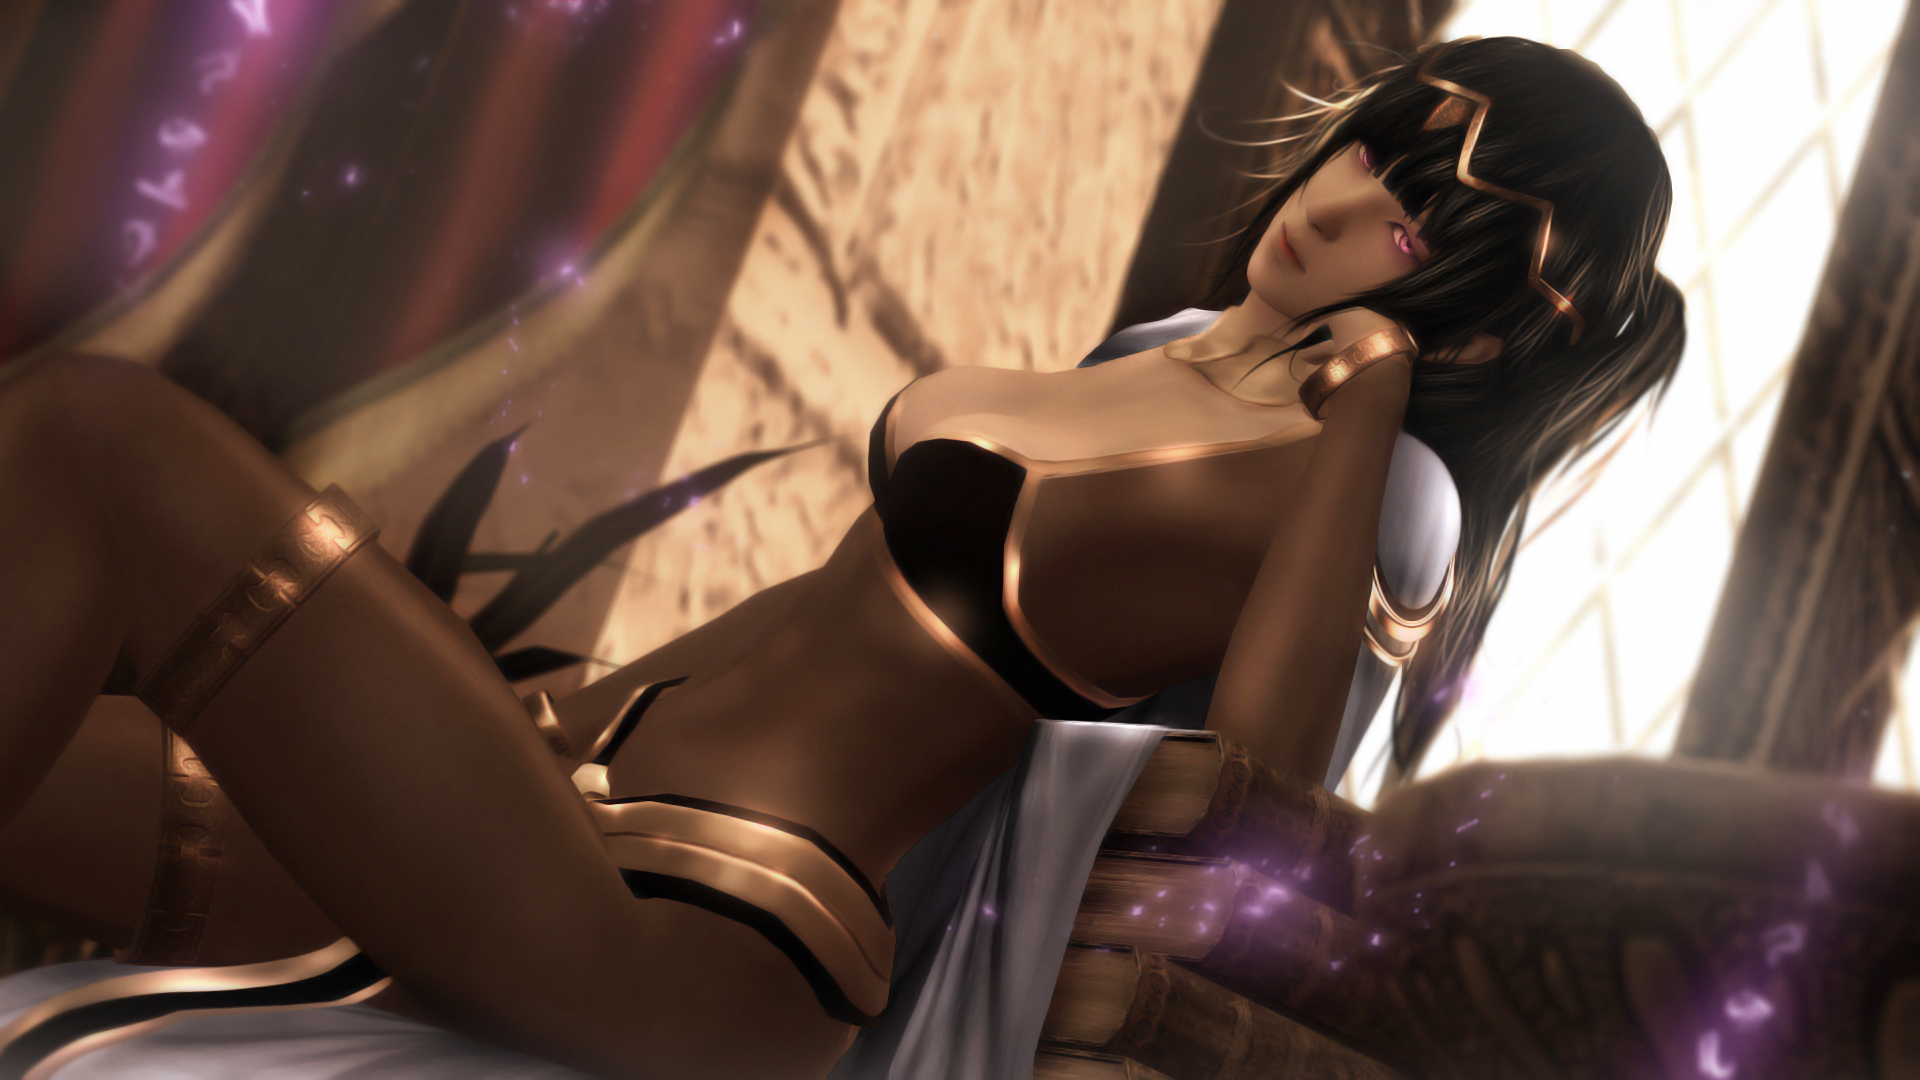 tharja_by_sculp2-db1wytz.jpg